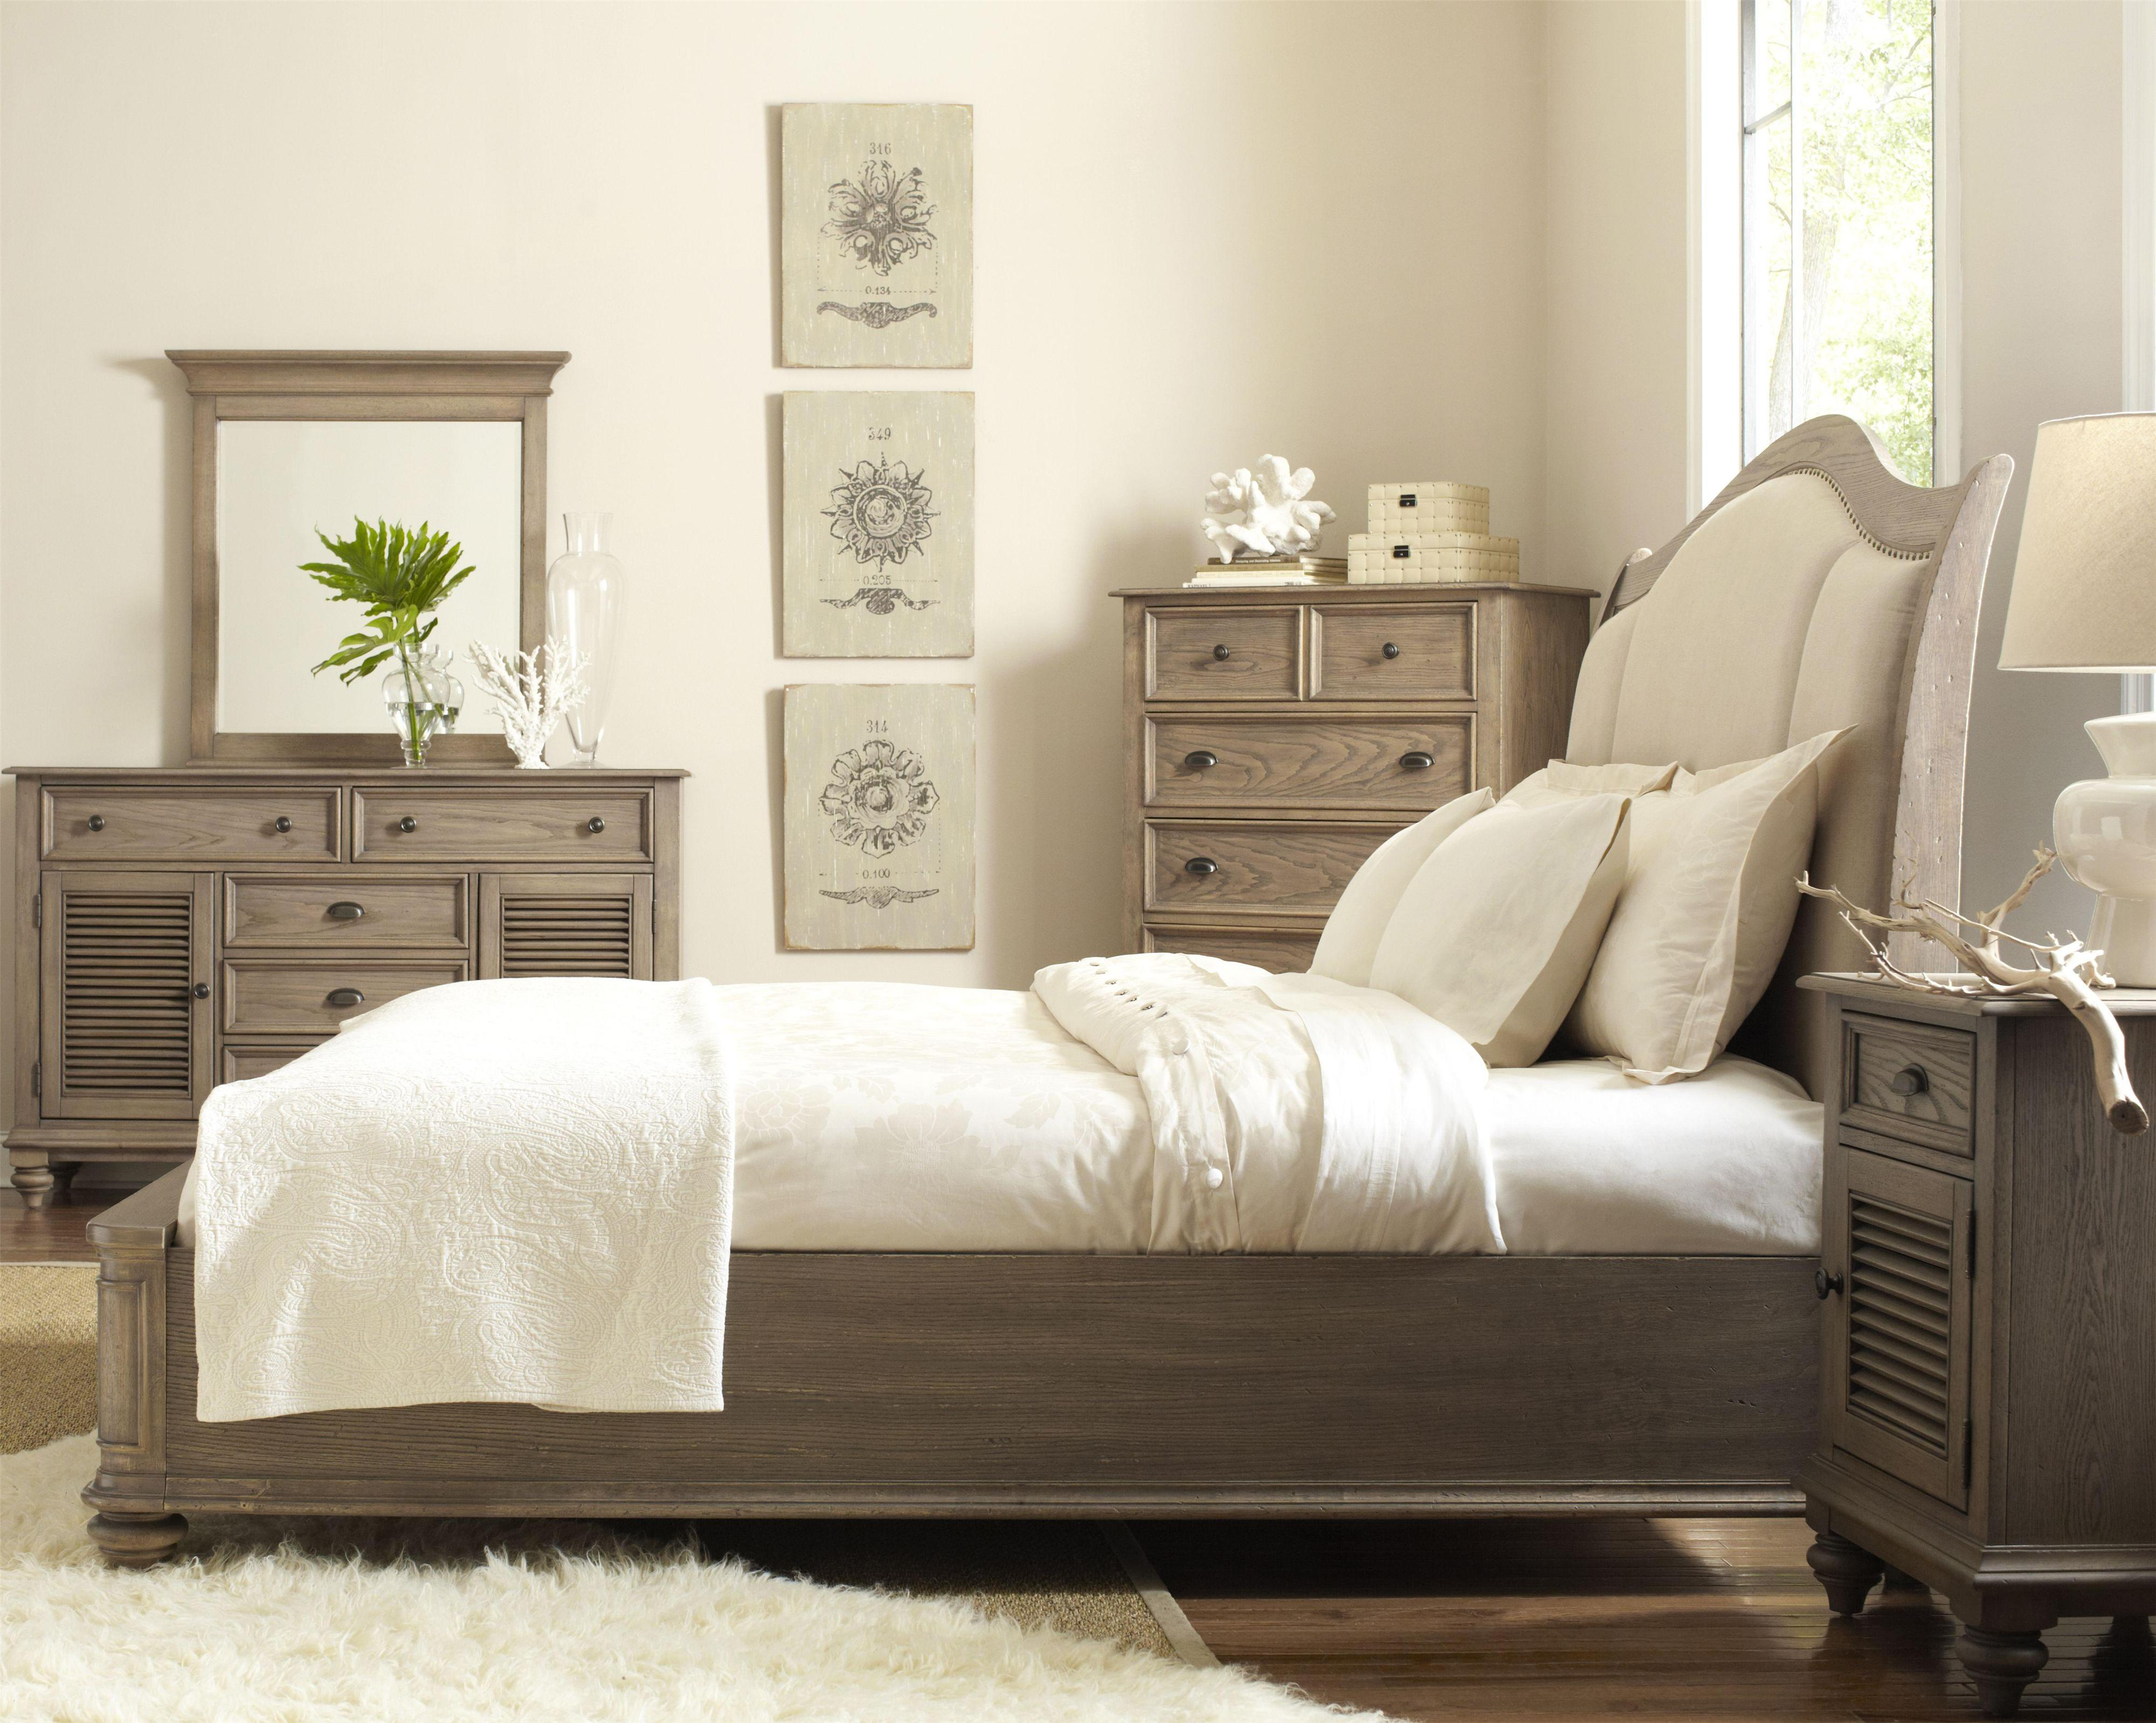 Coventry king upholstered sleigh headboard bed with nail Upholstered sleigh bed